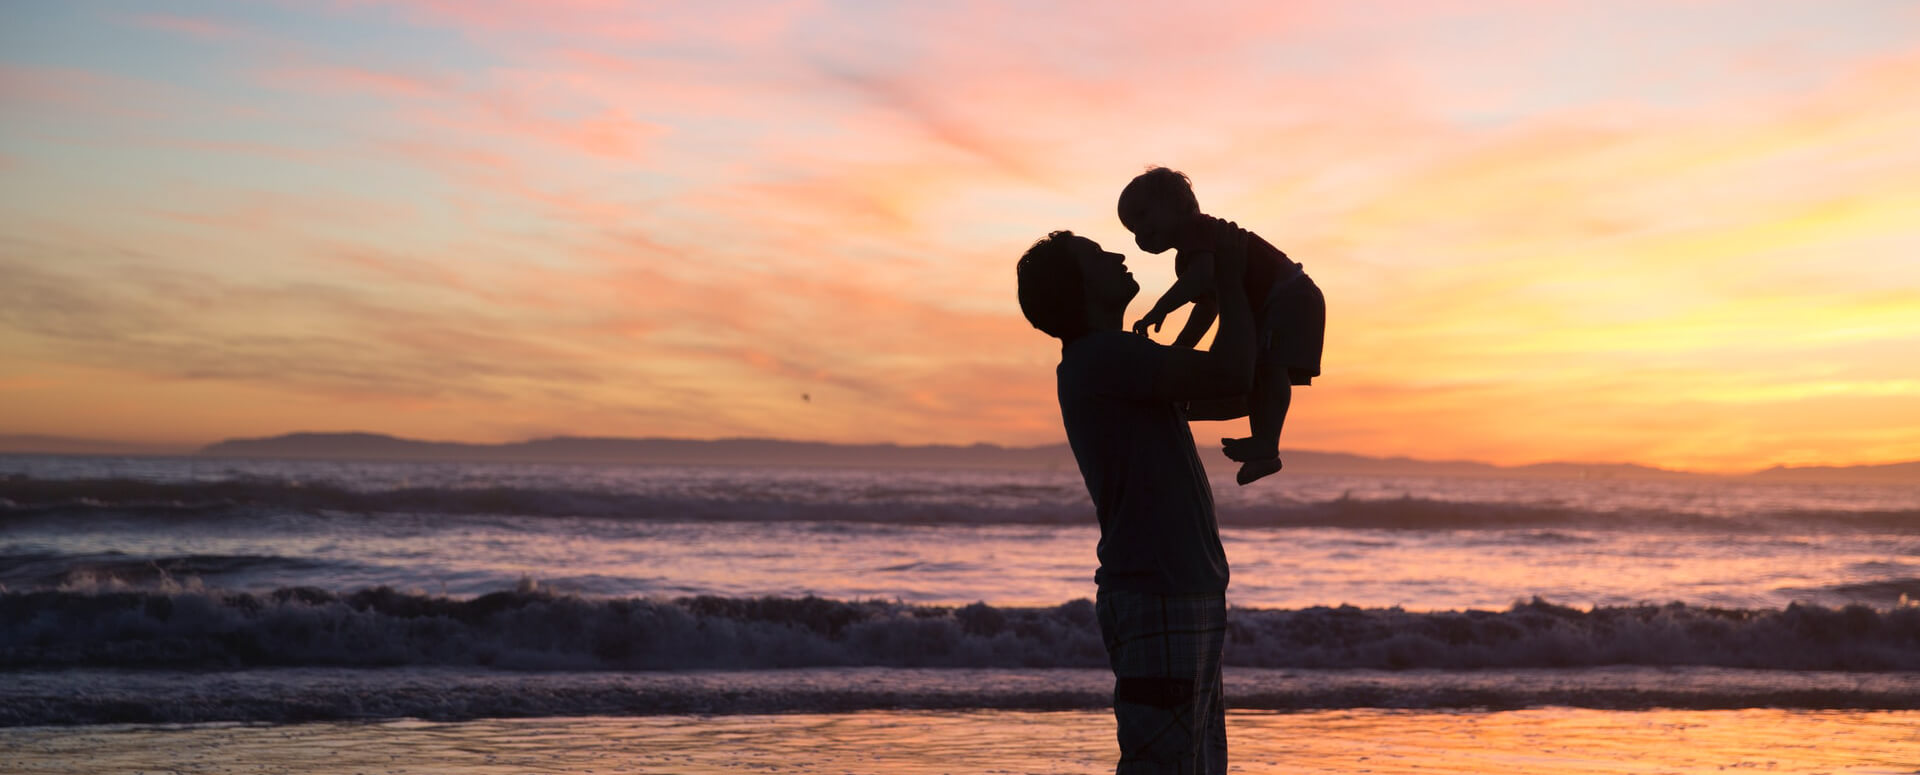 Father holding baby on beach